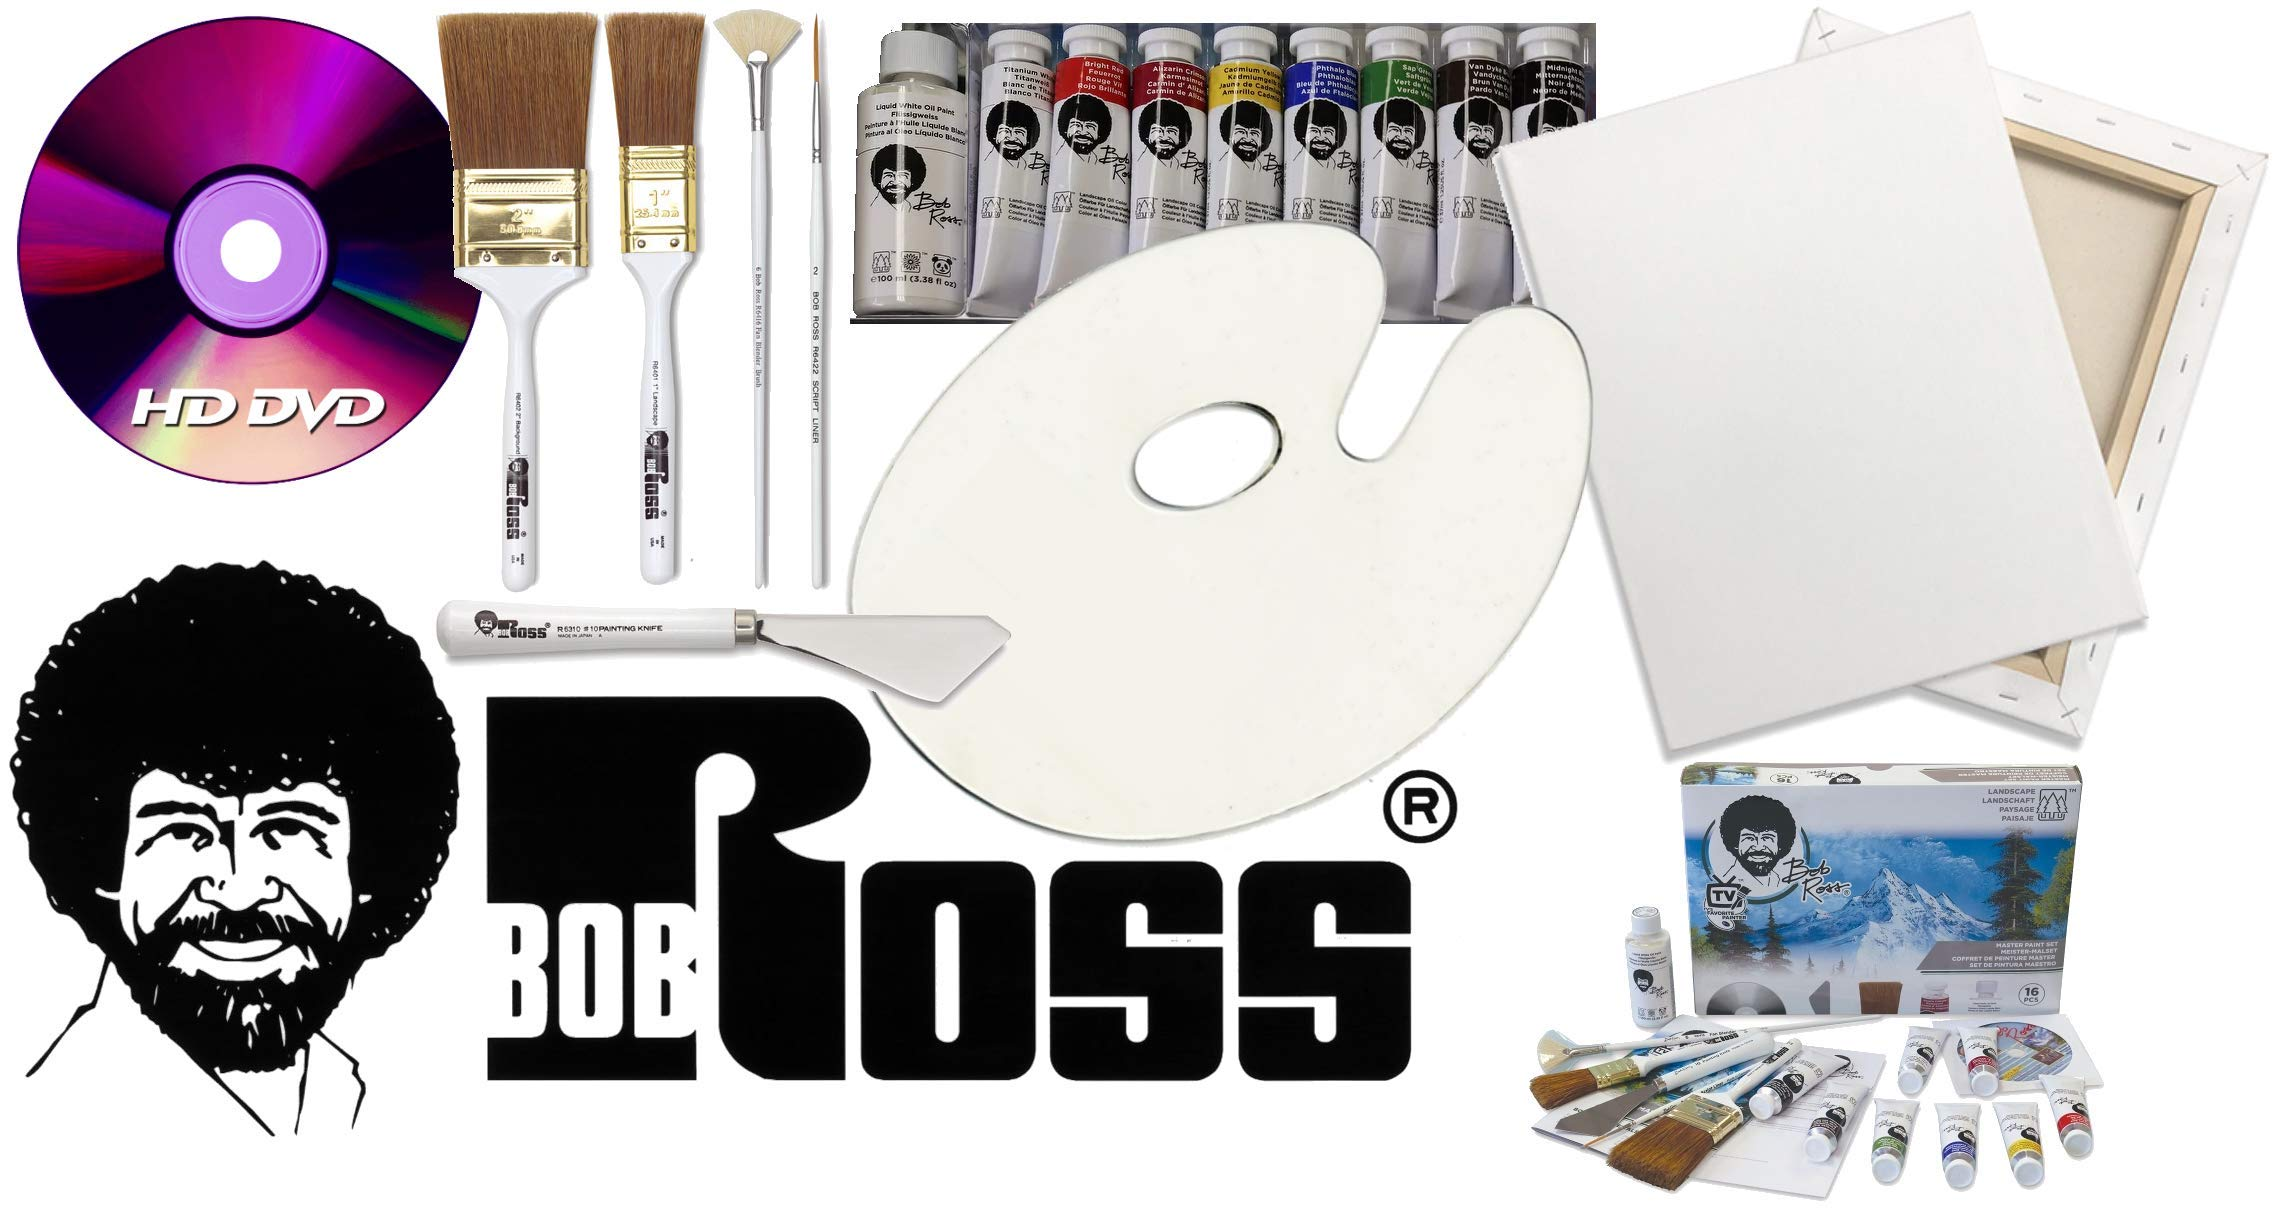 Bob Ross Painting Supplies 18 Piece Flagship Master Paint Set & DVD - The Joy of Painting Landscape Oil Kit with Canvas and Palette by Bob Ross